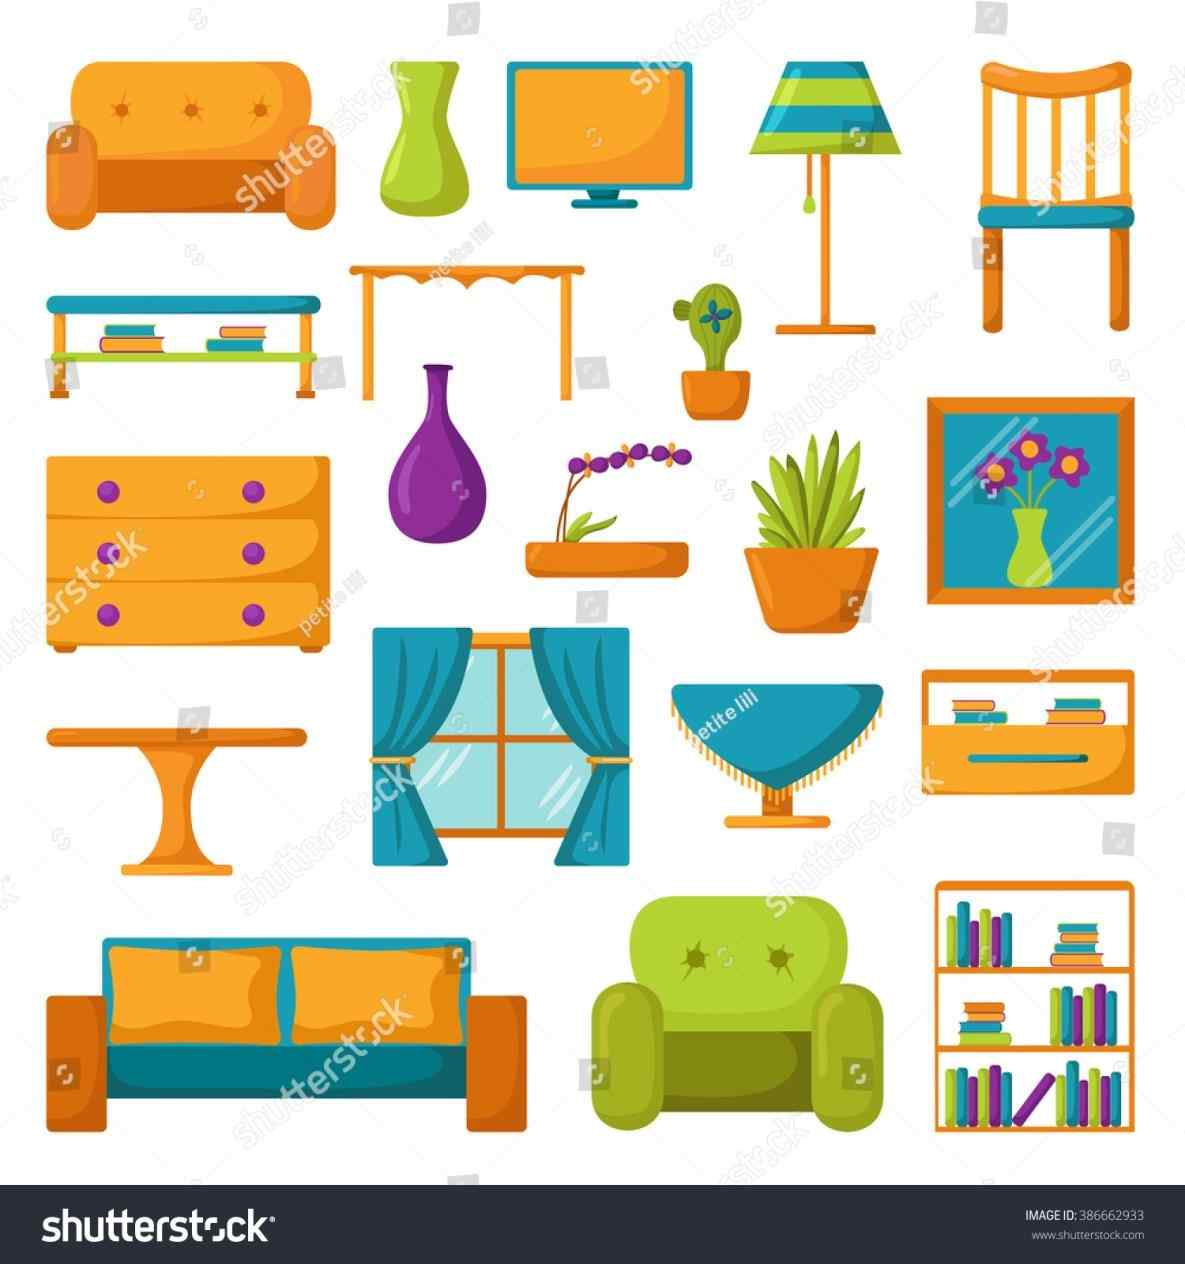 Furniture clipart. The images collection of